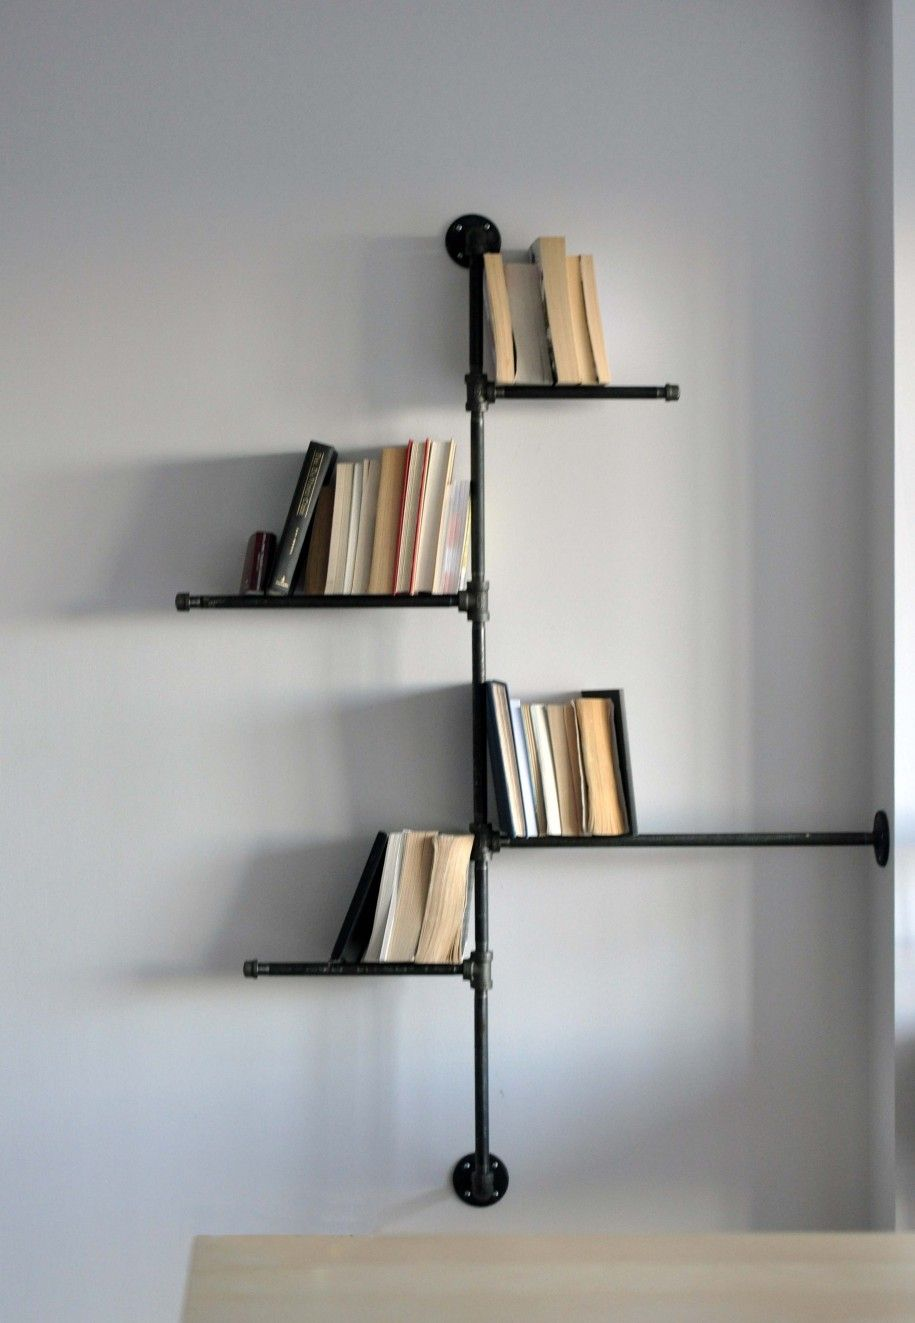 Wall Hanging Shelves Design wall mounted shelves Shelf Design Fantastic Hanging Bookshelf Furniture